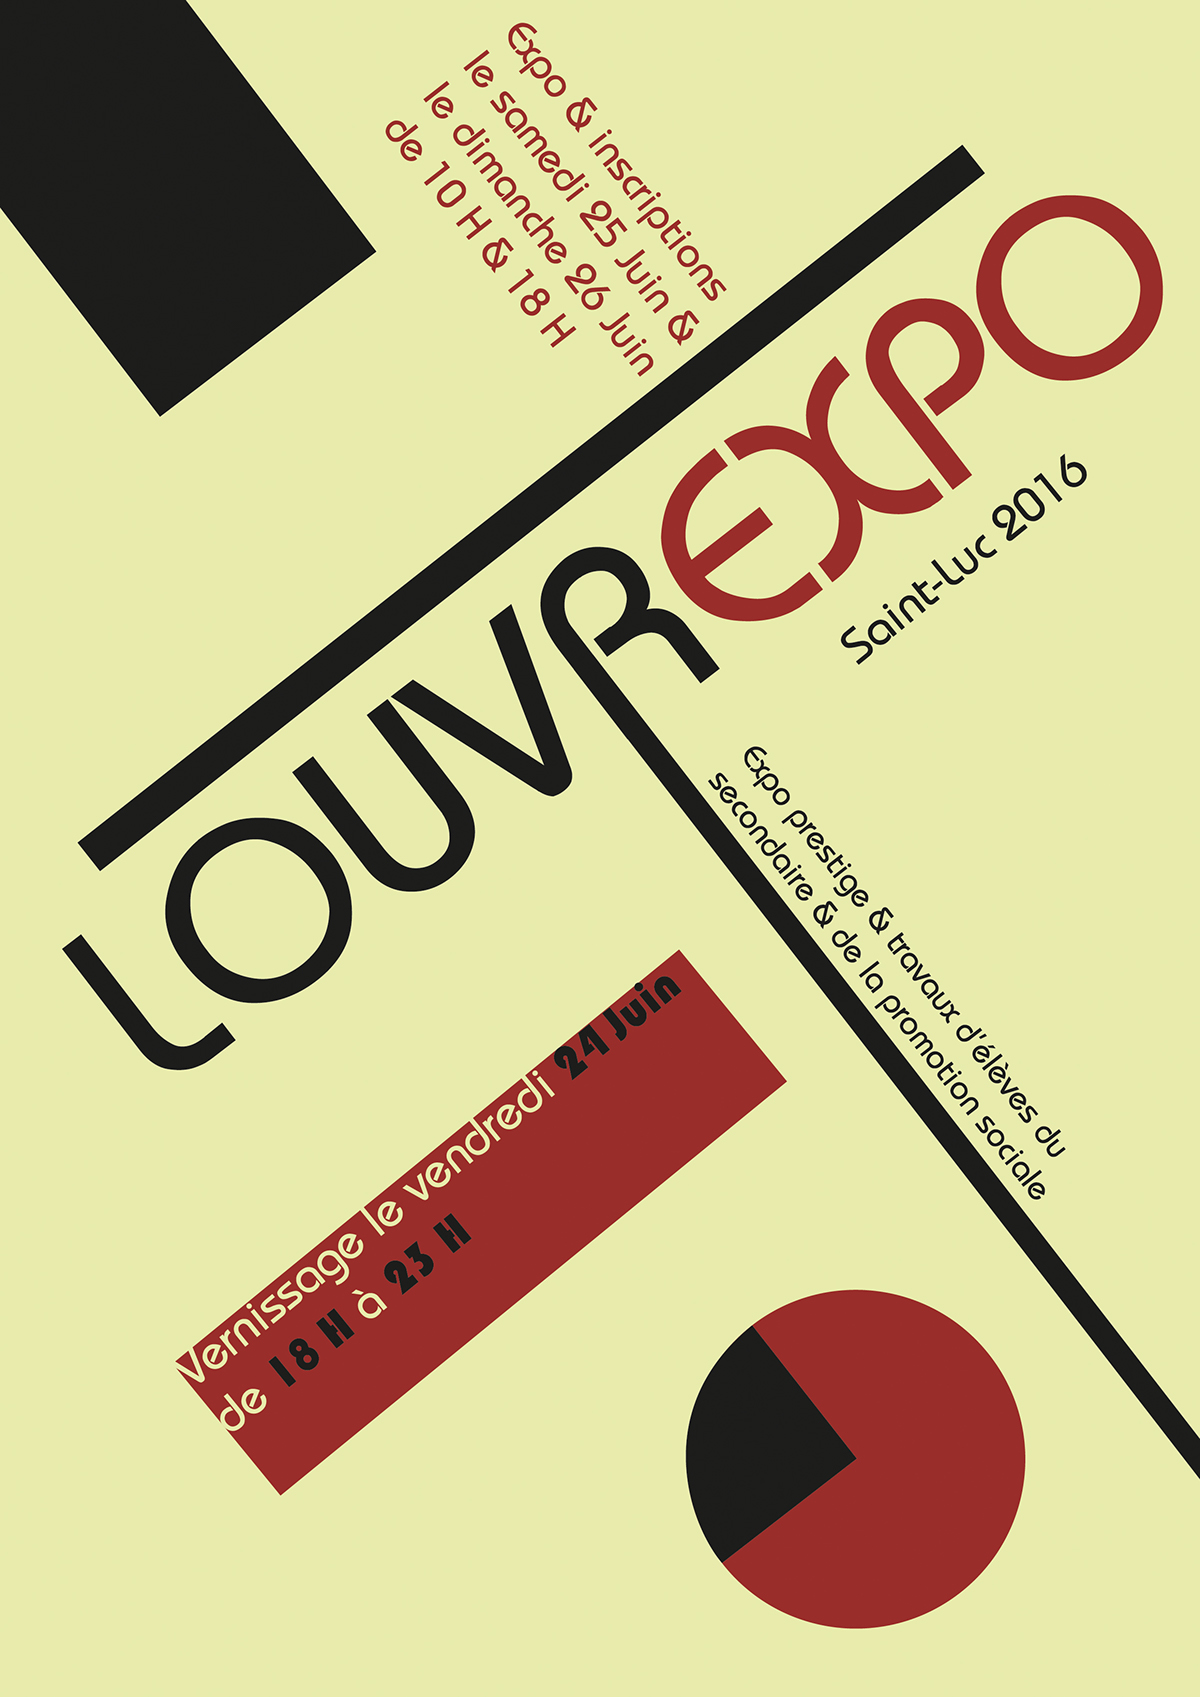 bauhaus | louvrexpo poster on behance